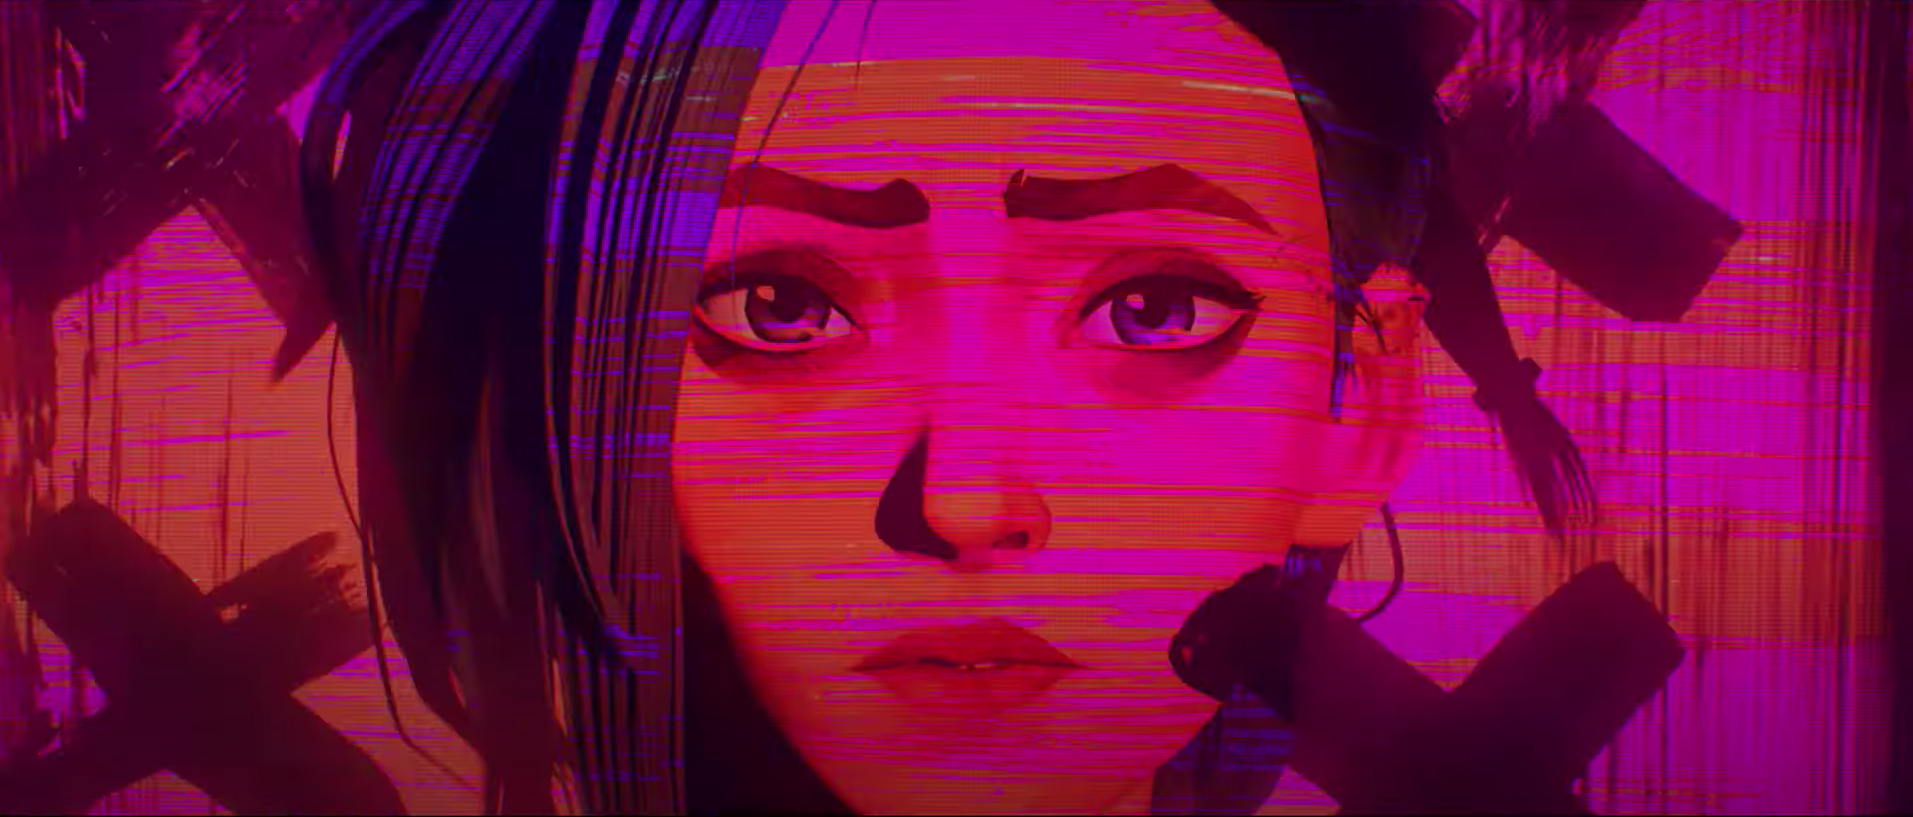 Jinx from the Imagine Dragons music video for the League of Legends' Netflix series Arcane